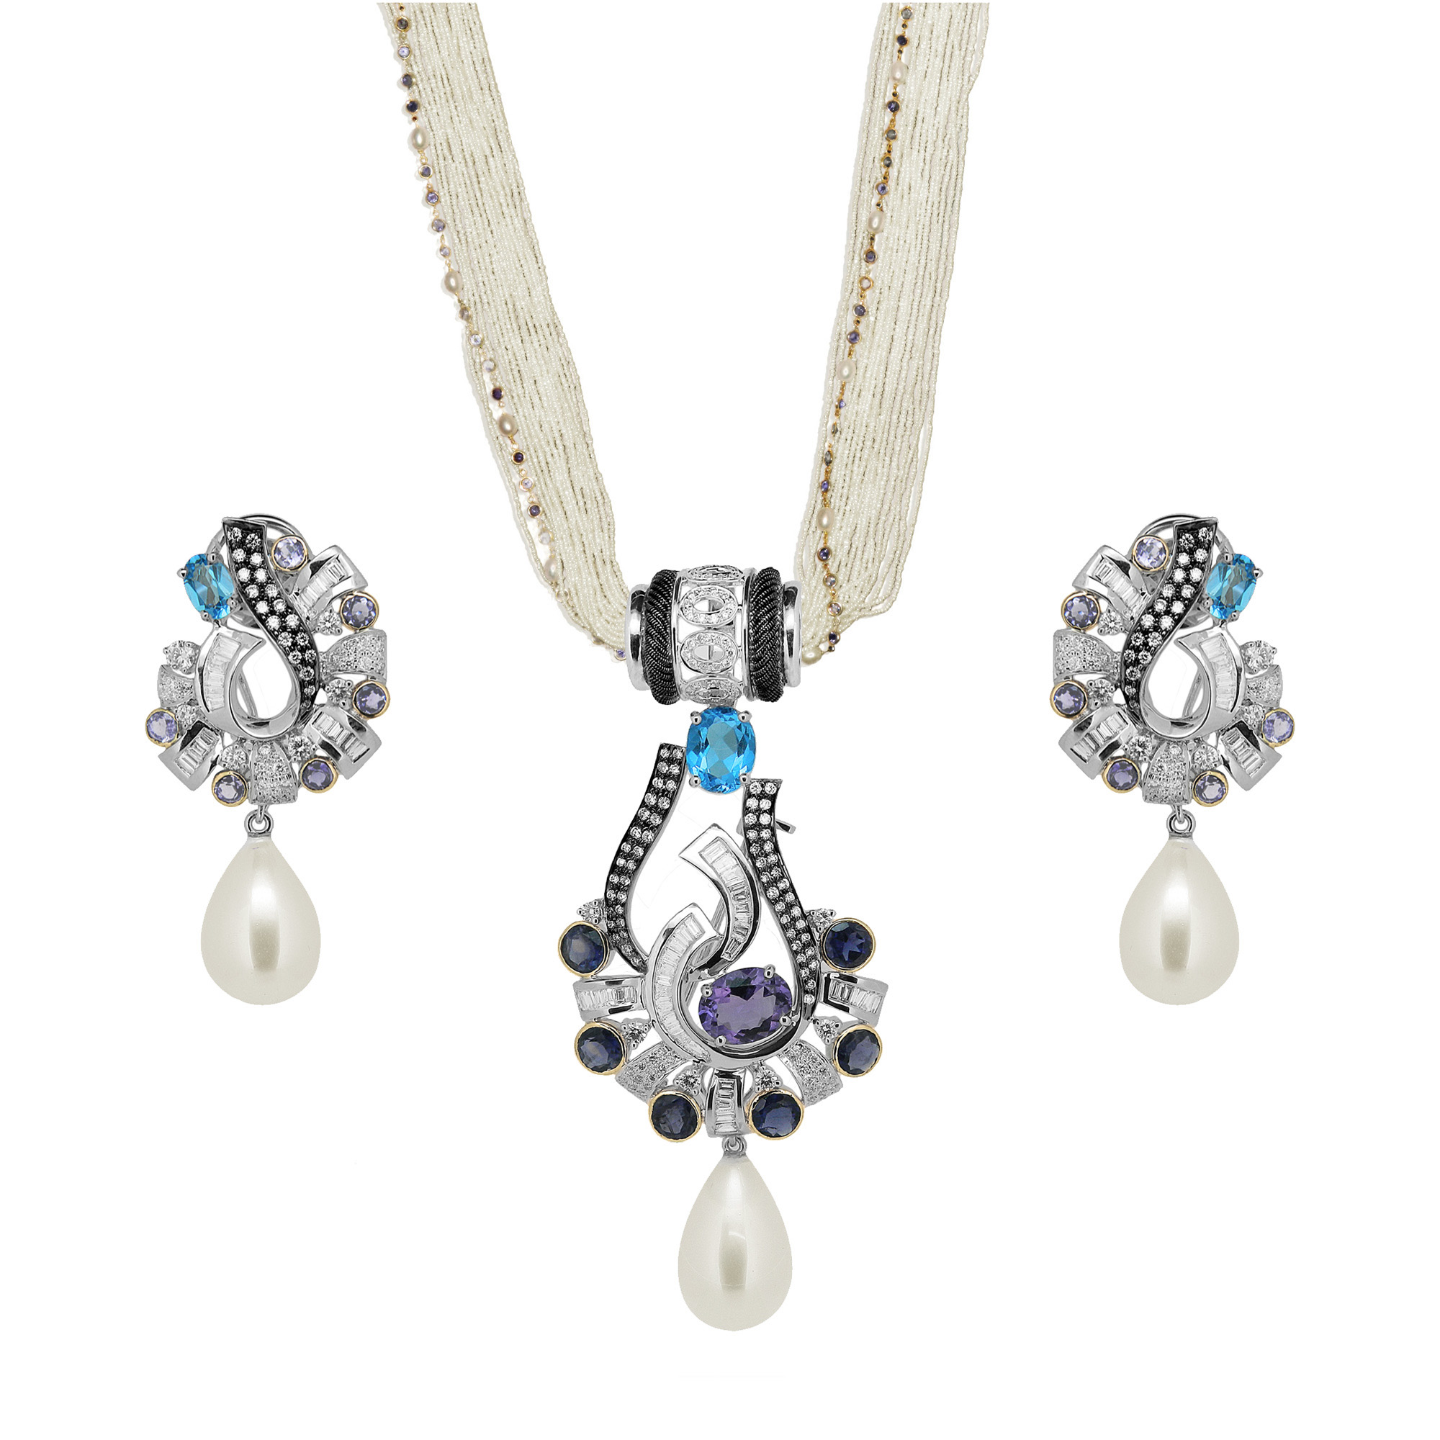 A pair of diamond gemstone, multi functional earrings with removable chandelier drops, made by embroidering beads and gold wires on silk